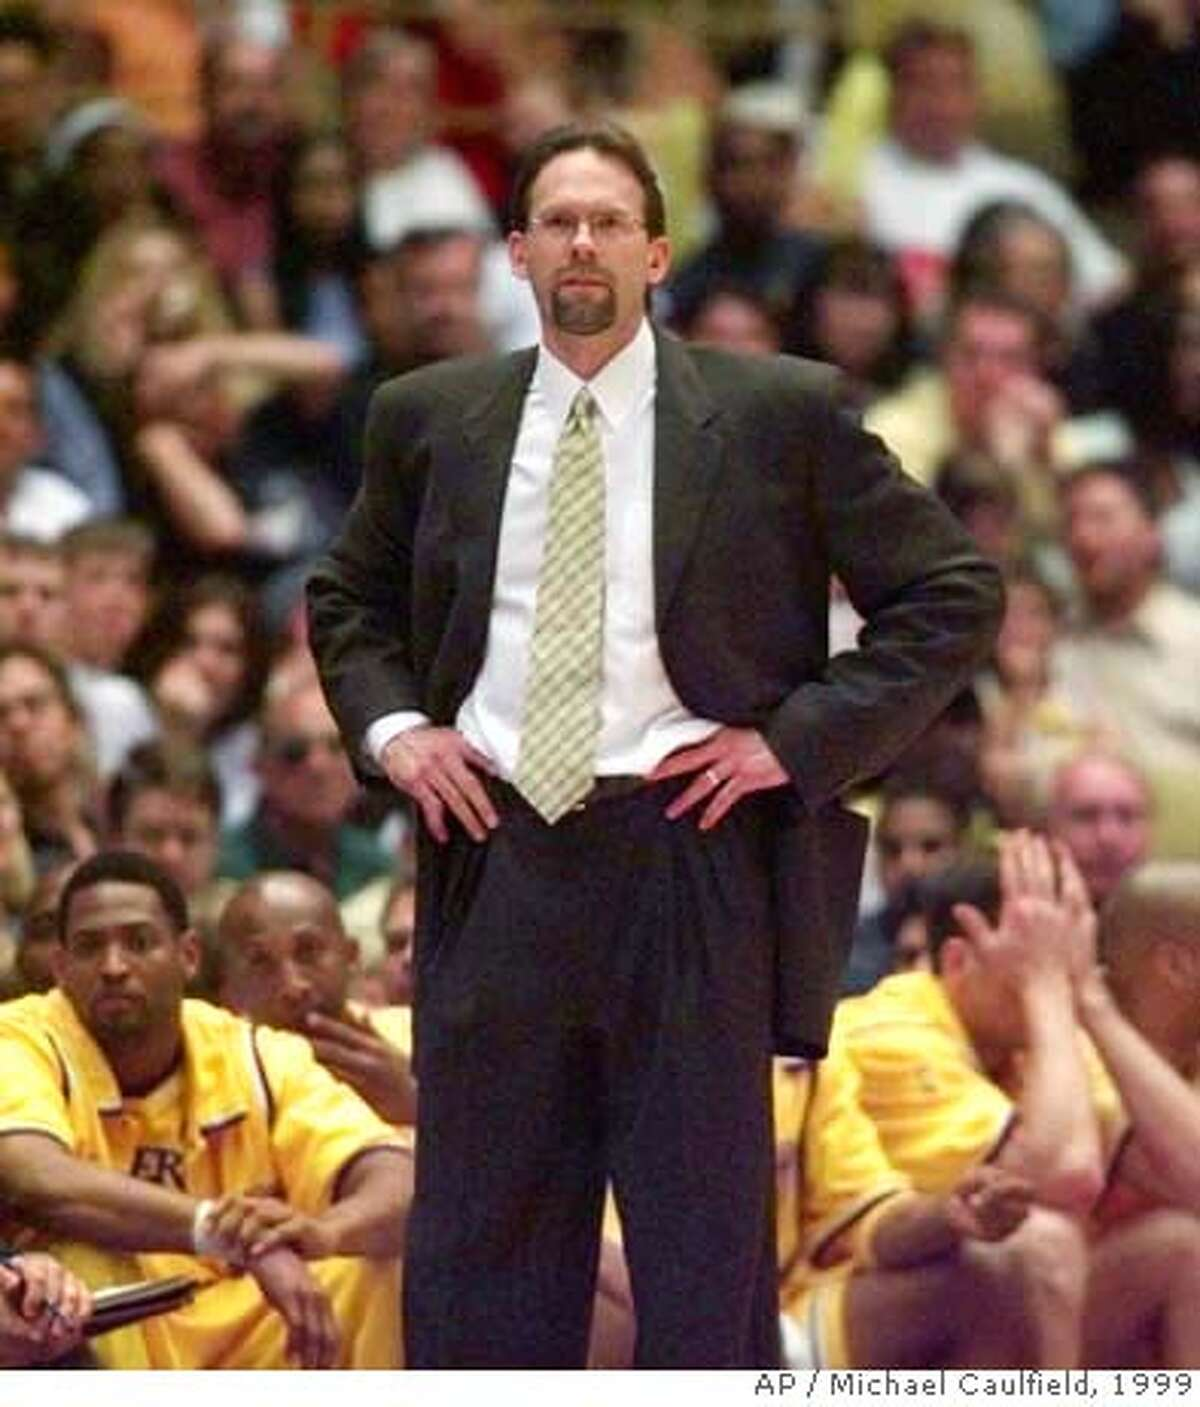 Los Angeles Lakers head coach Kurt Rambis watches his team down court during the closing seconds of game four of the Western Conference semifinals against the San Antonio Spurs at the Great Western Forum in Inglewood, Calif., Sunday, May 23, 1999. The Spurs won 118-107 to sweep the series. (AP Photo/Michael Caulfield) DIGITAL CAMERA IMAGE